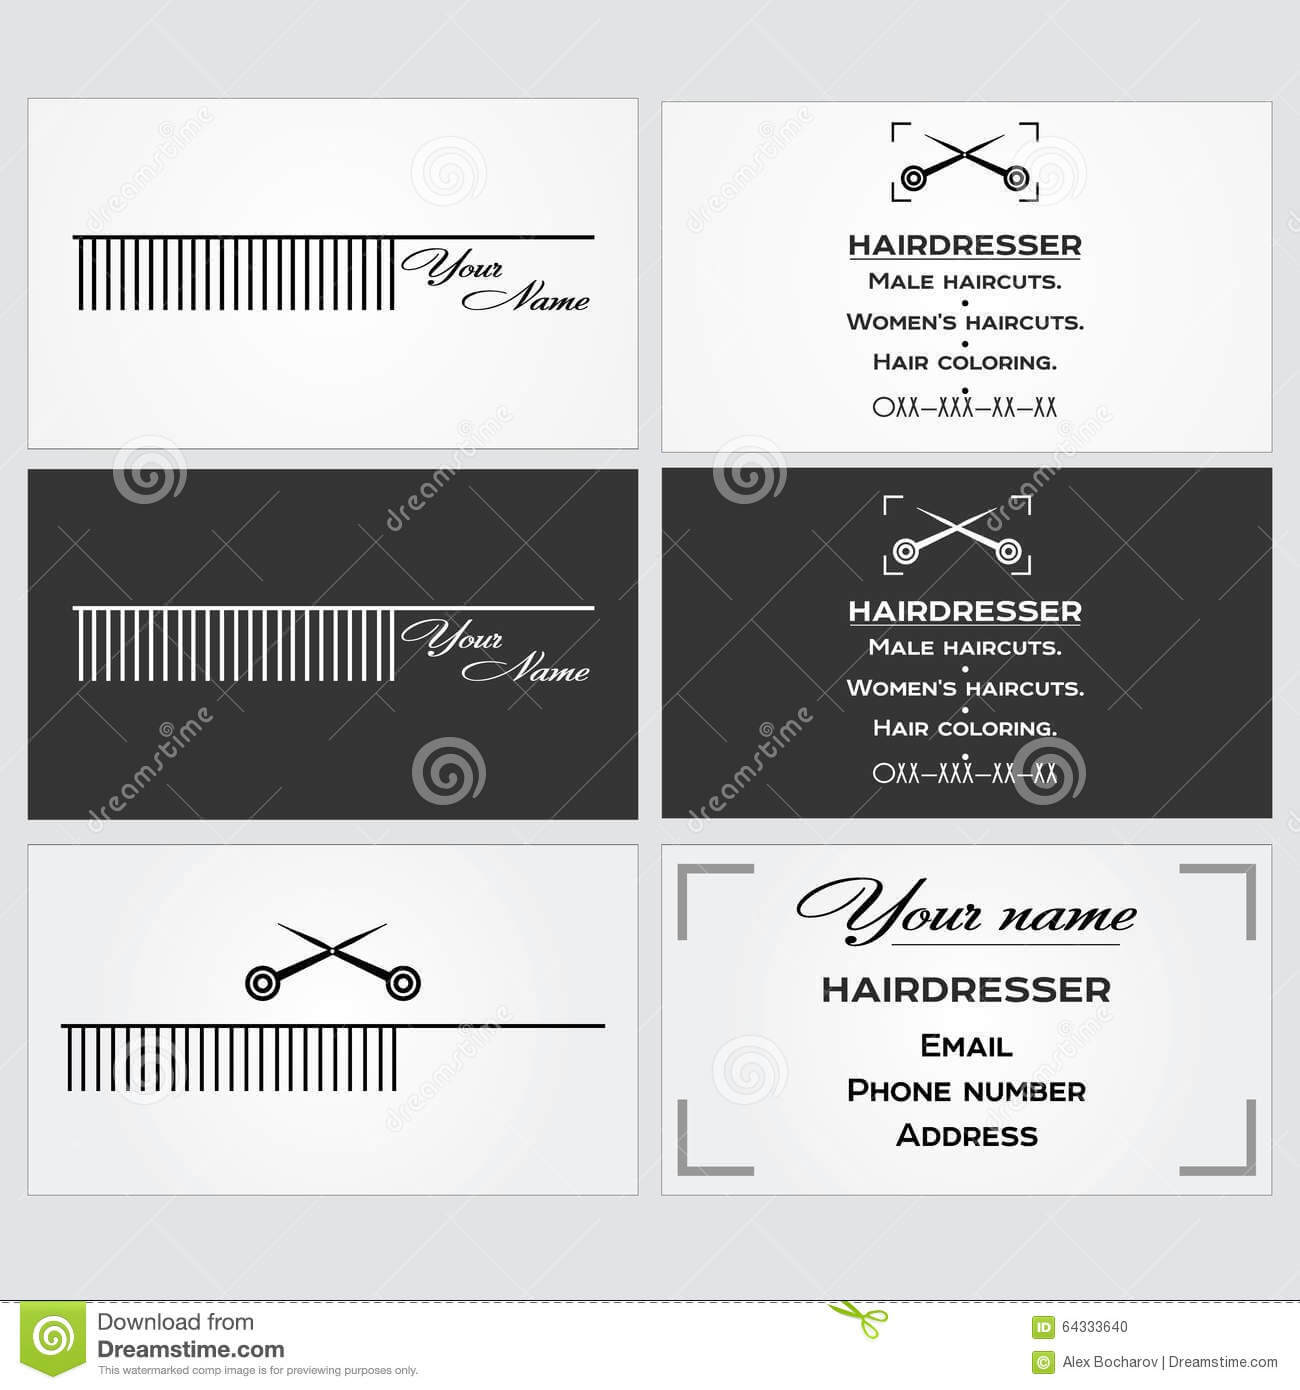 Business Card Template For A Hairdresser. Stock Vector with regard to Hairdresser Business Card Templates Free